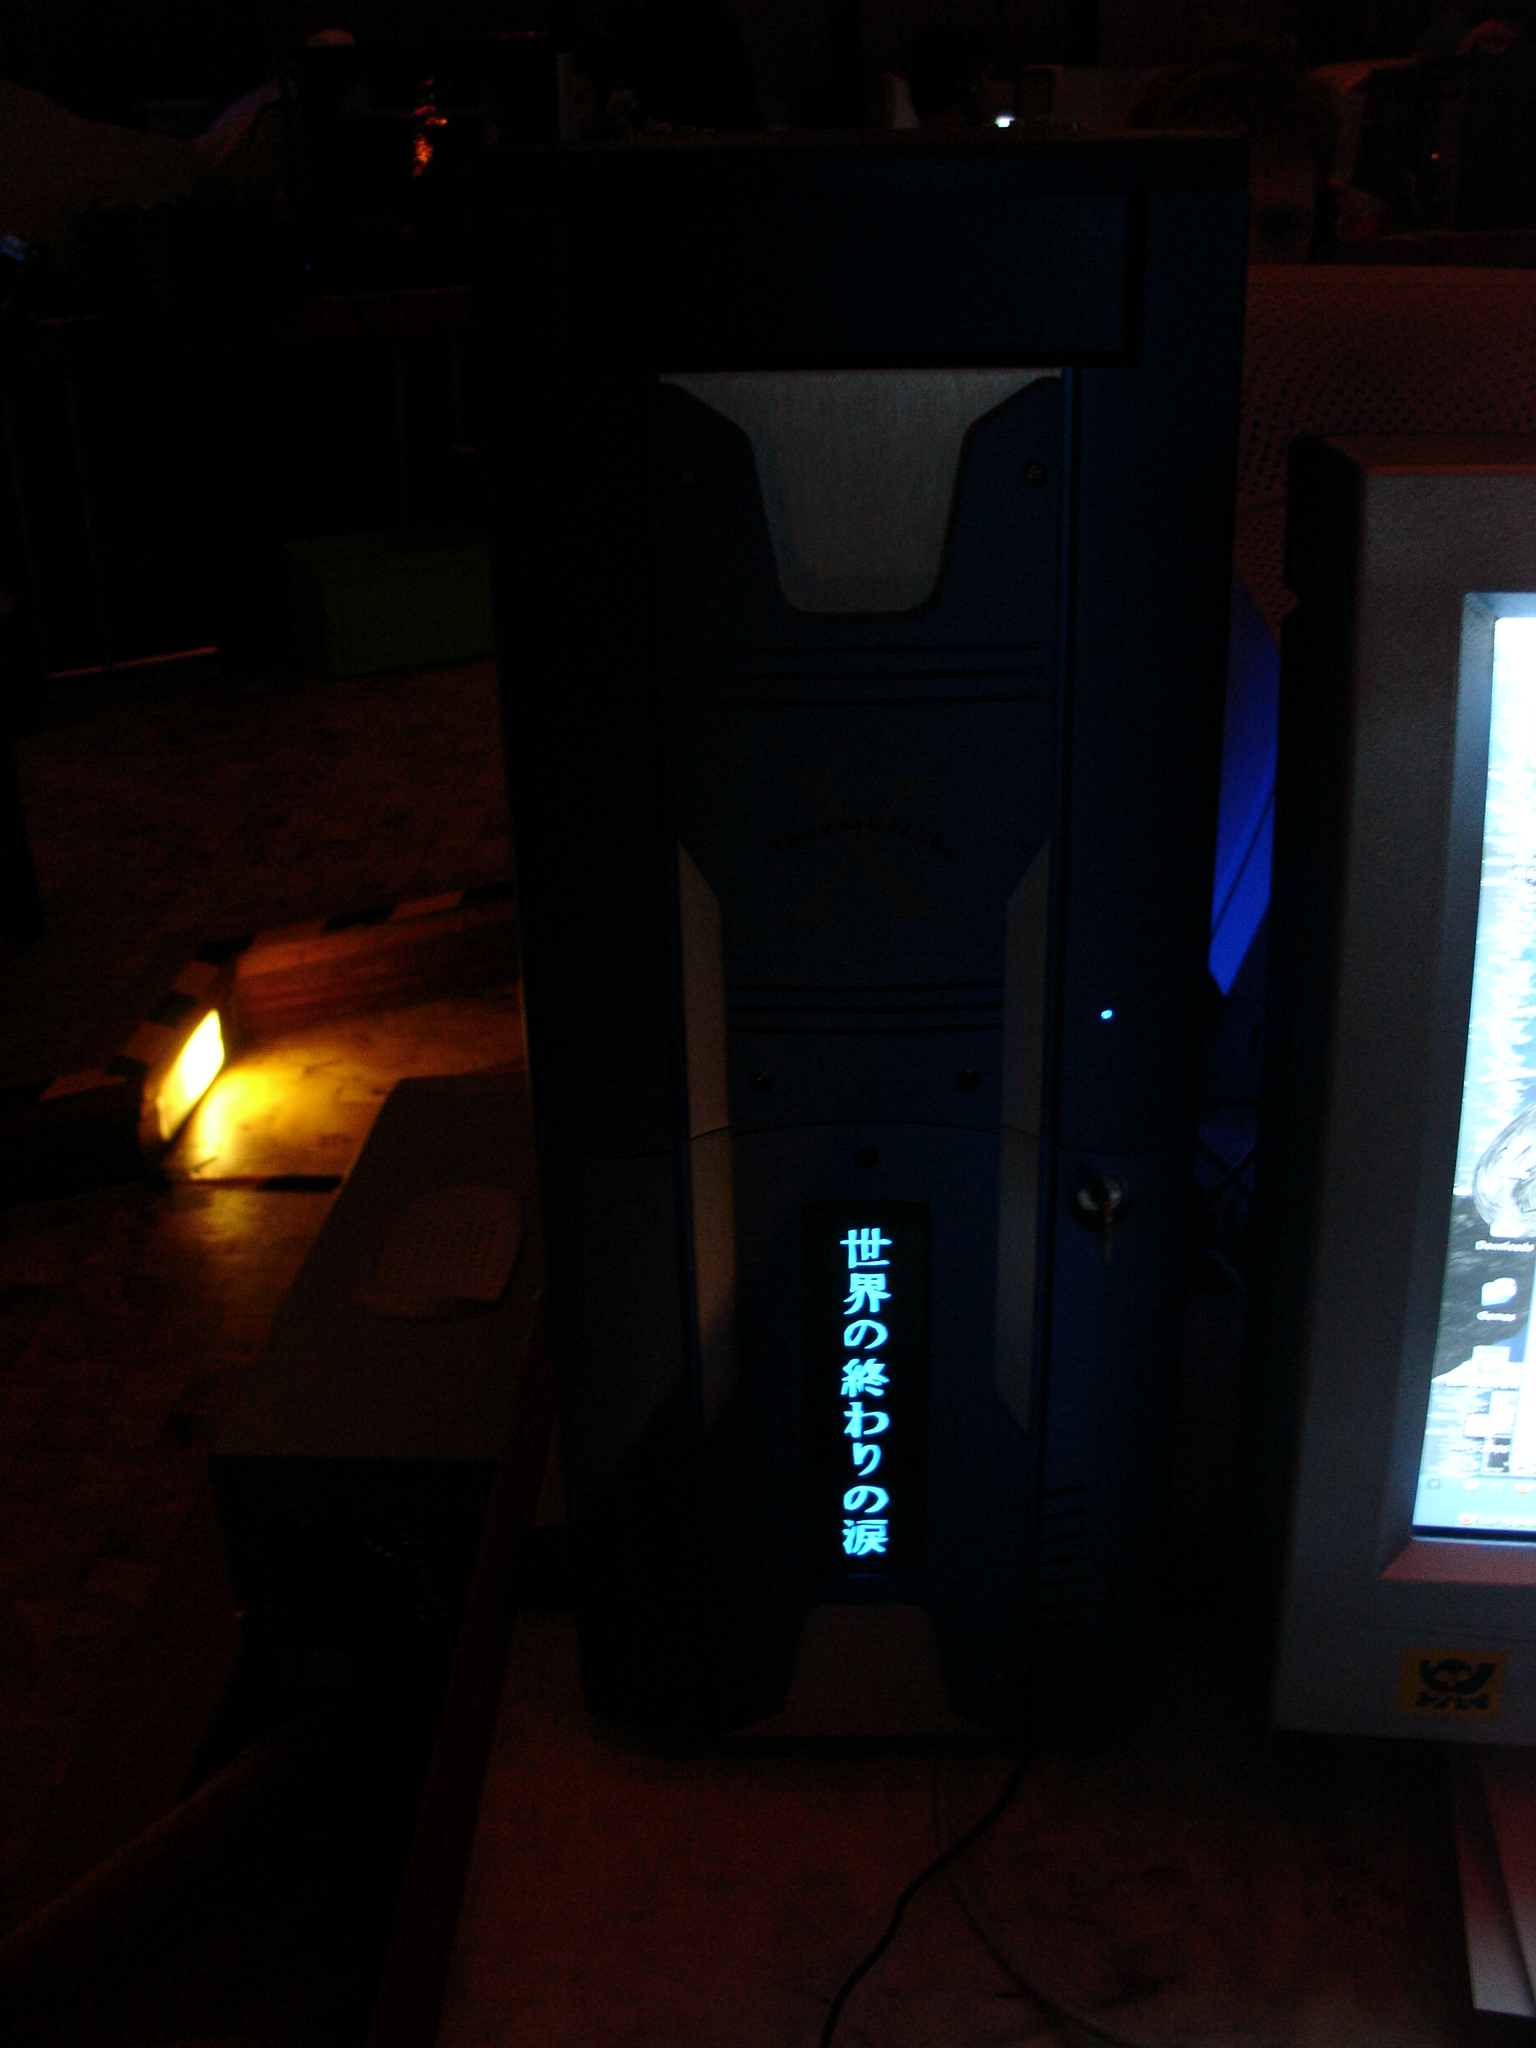 Arctic Blue v2 front view